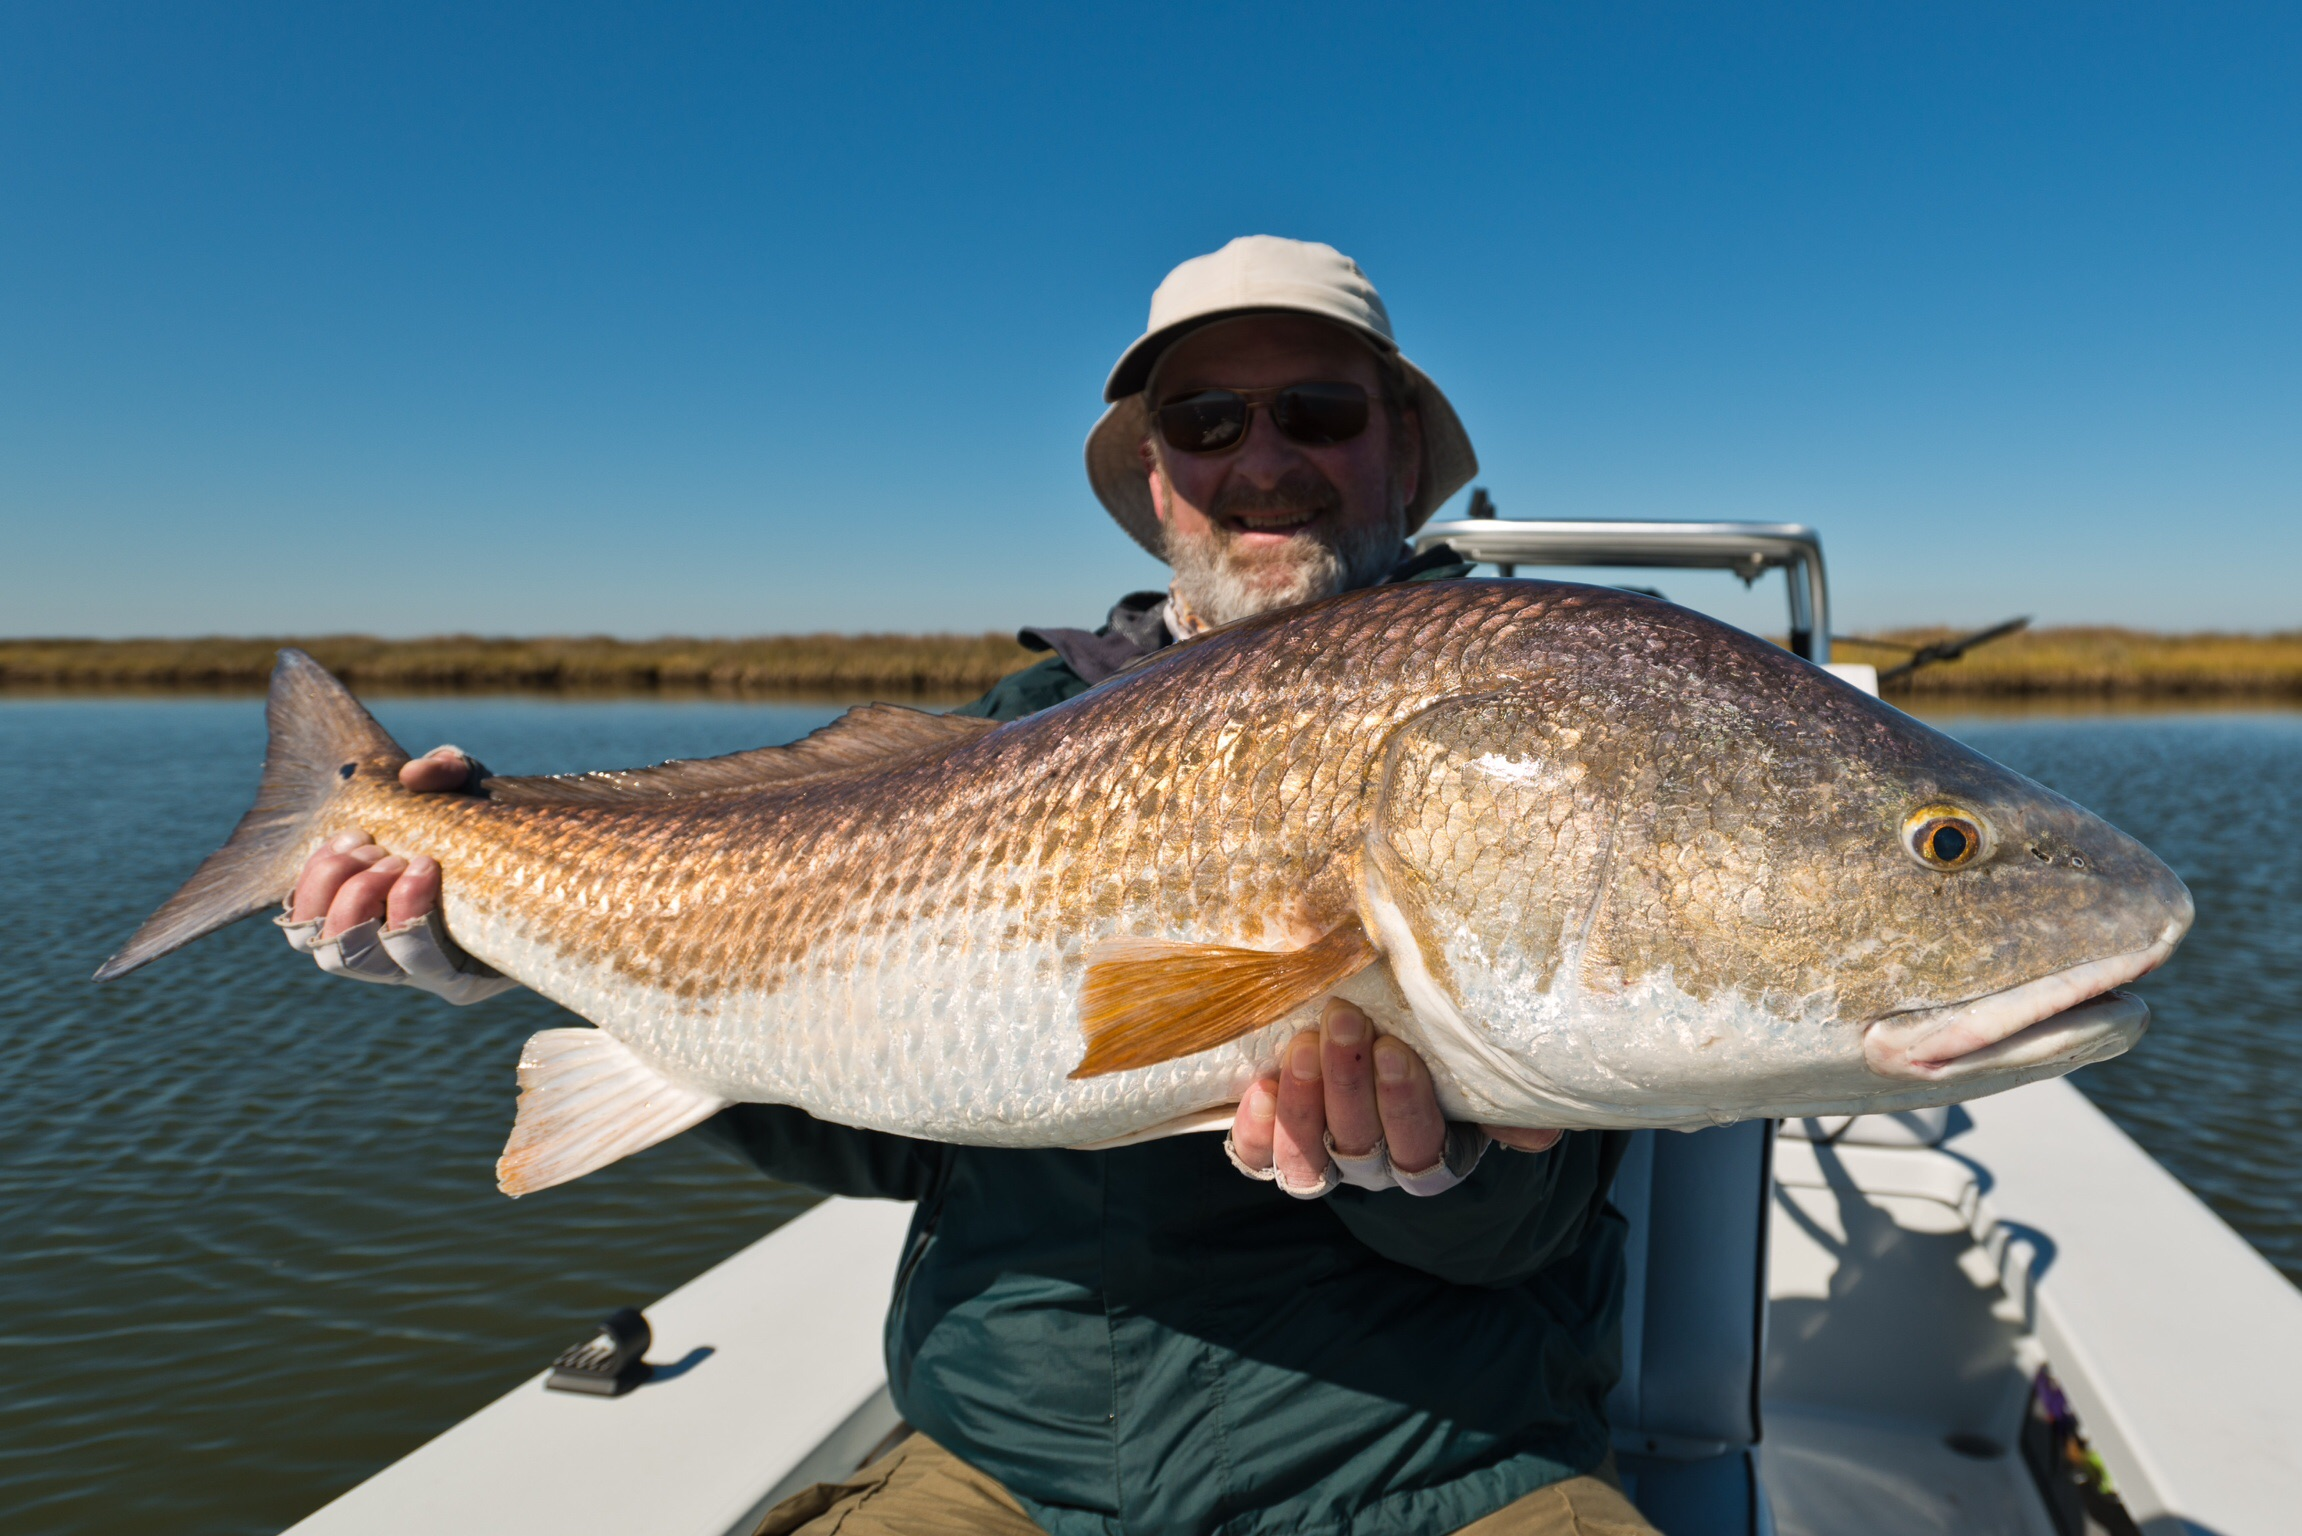 fly-fishing-redfish-new-orleans-louisiana-marsh-27